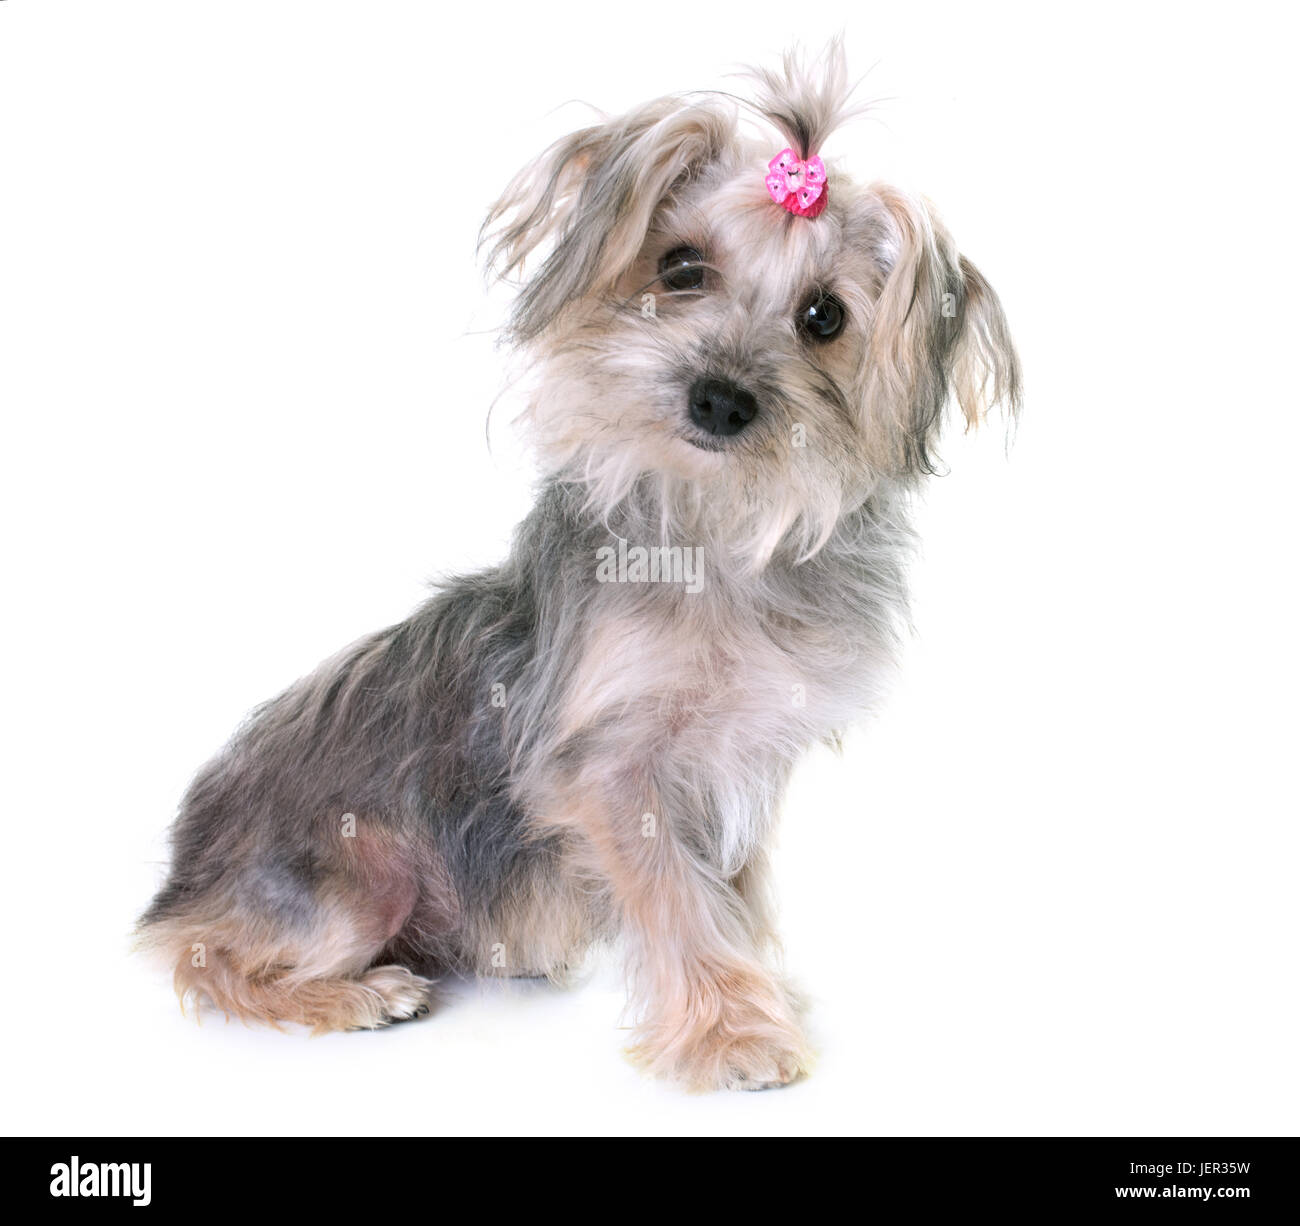 crossbred yorkshire terrier in front of white background - Stock Image